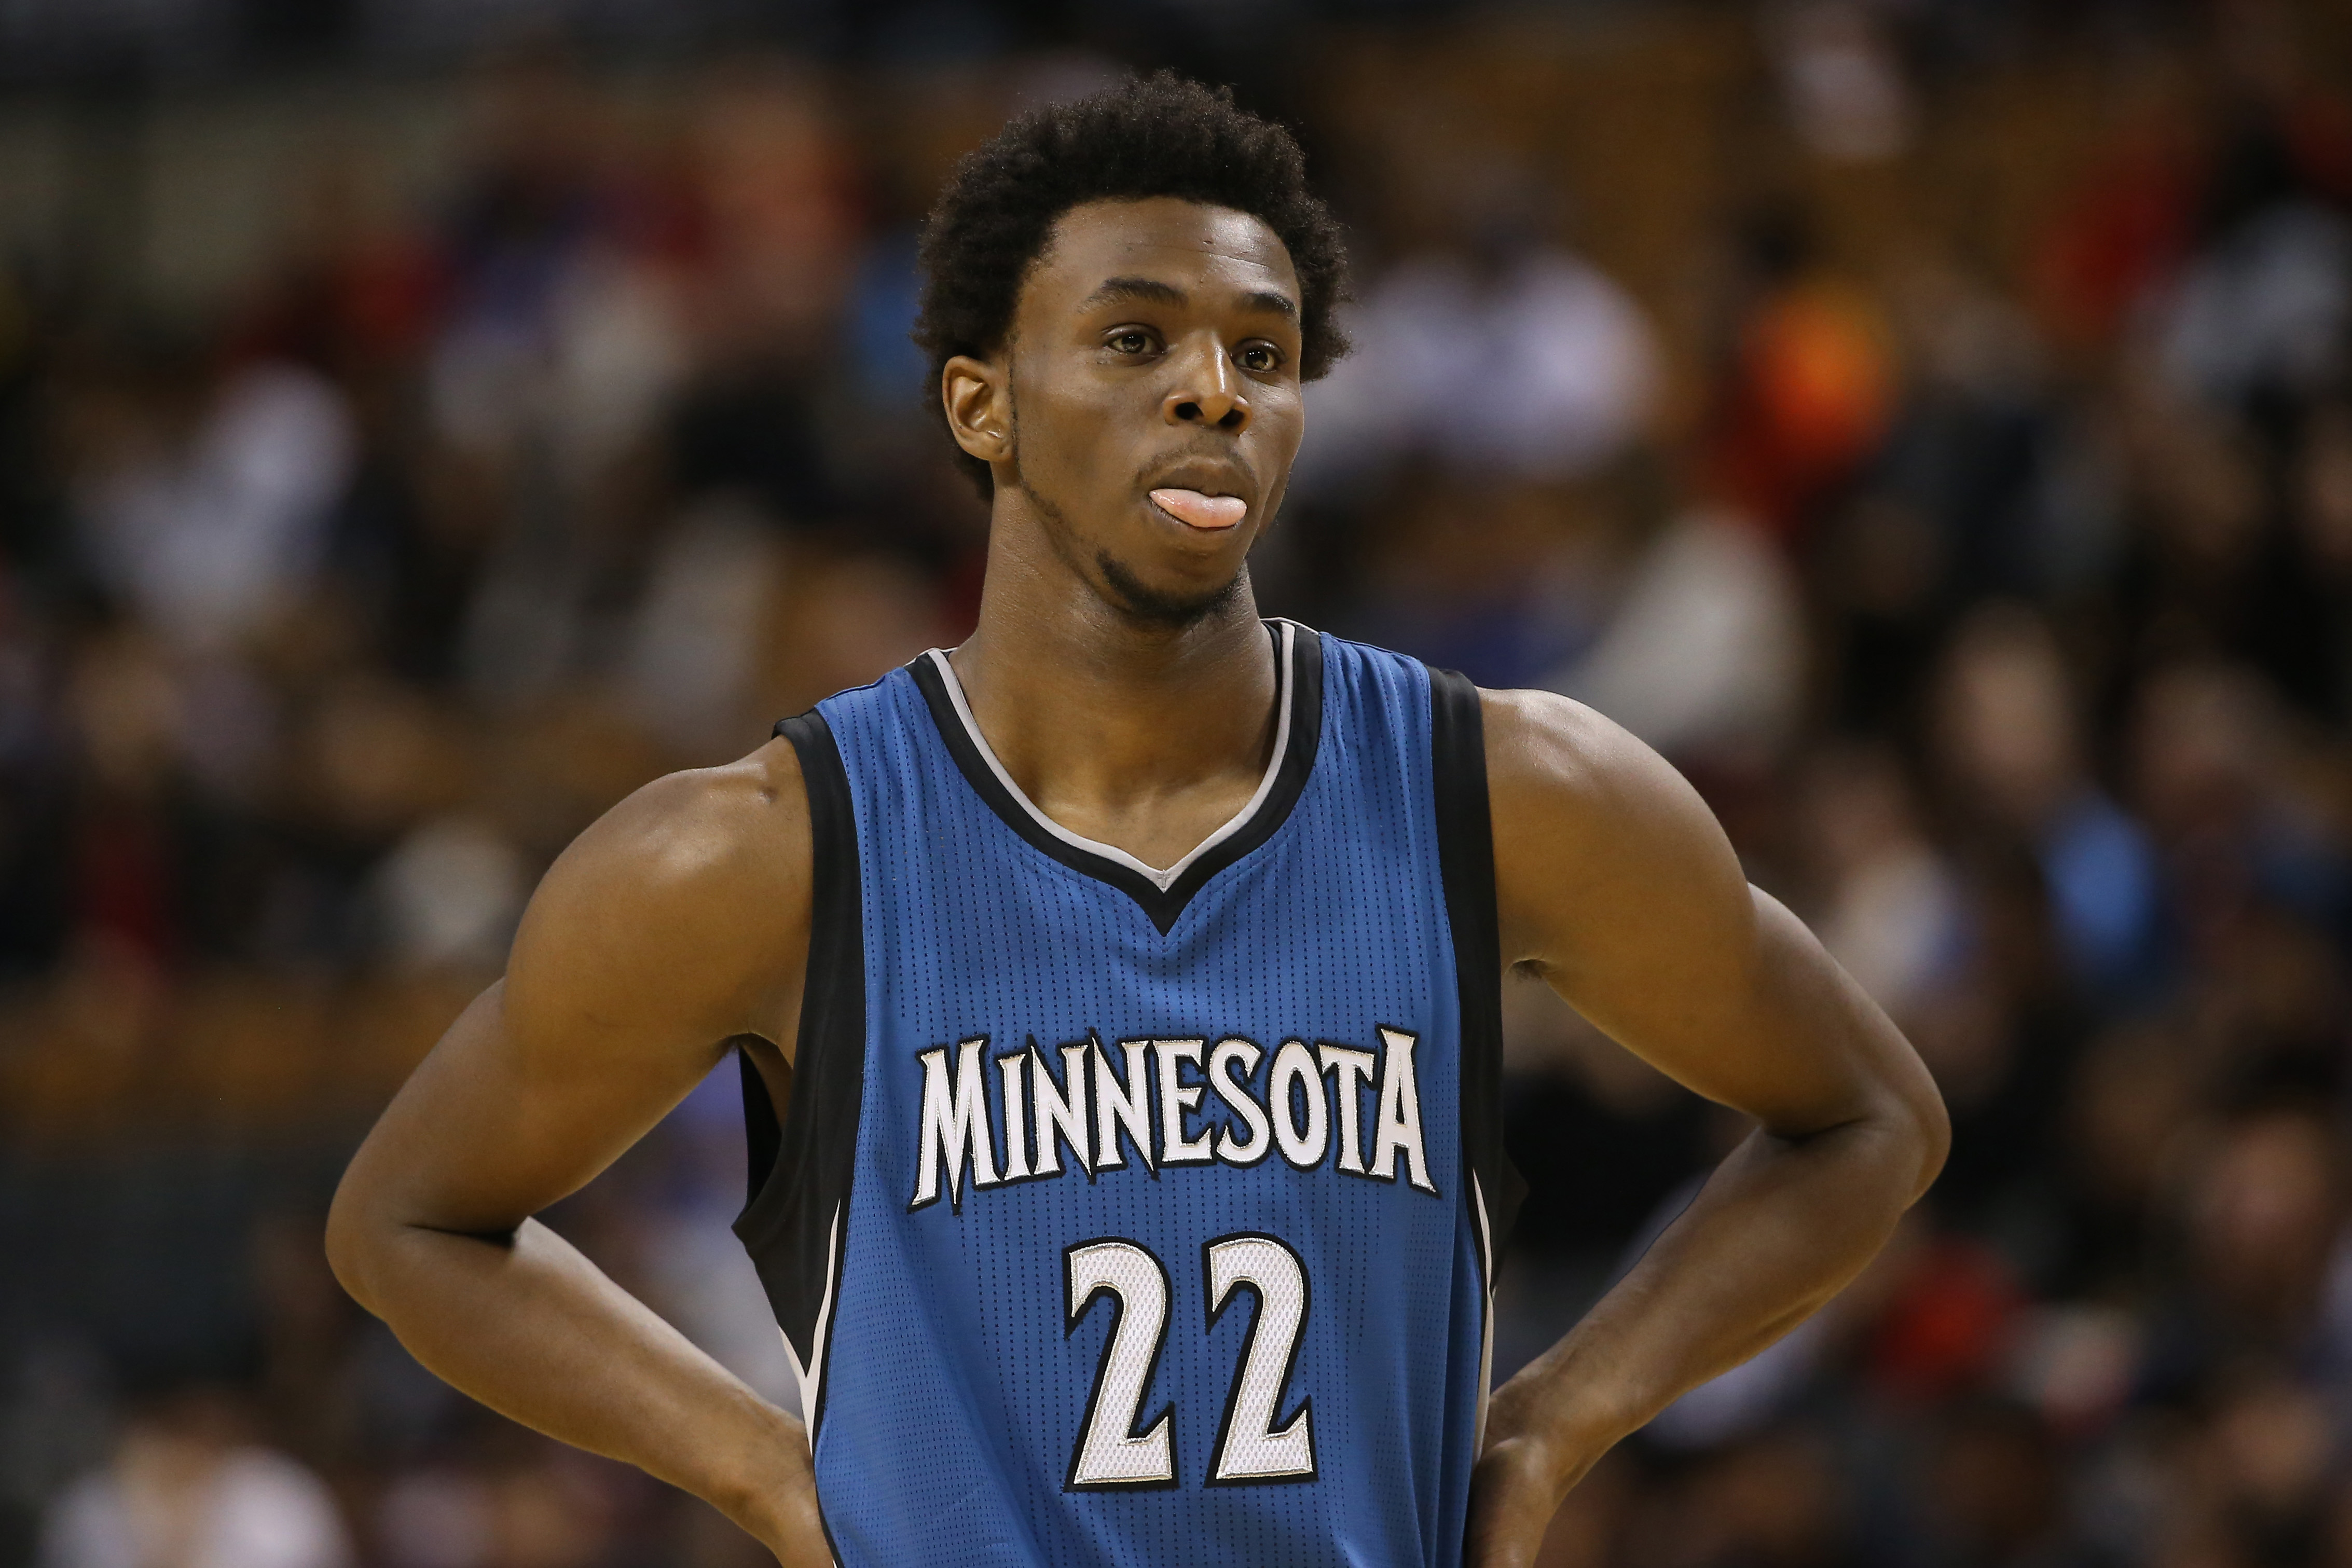 Andrew Wiggins is going to explode this year. Watch out...